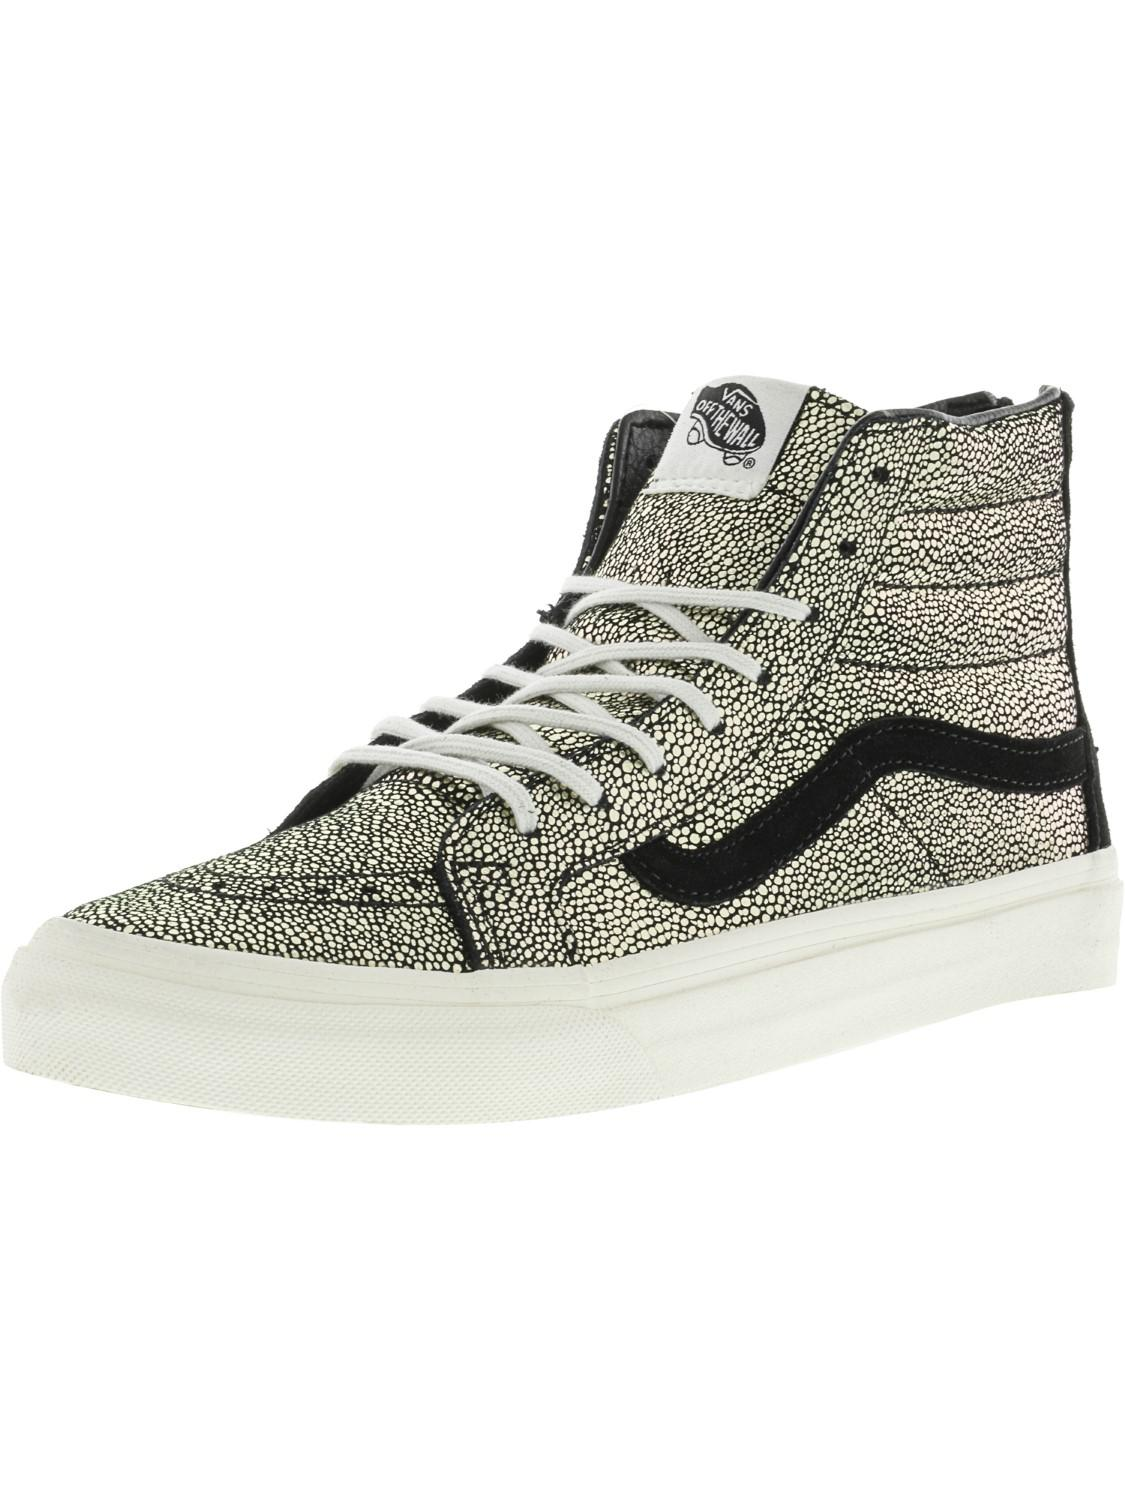 Lyst - Vans Sk8-hi Slim Zip Gold Dots   Blanc De High-top ... 7a164fa0f